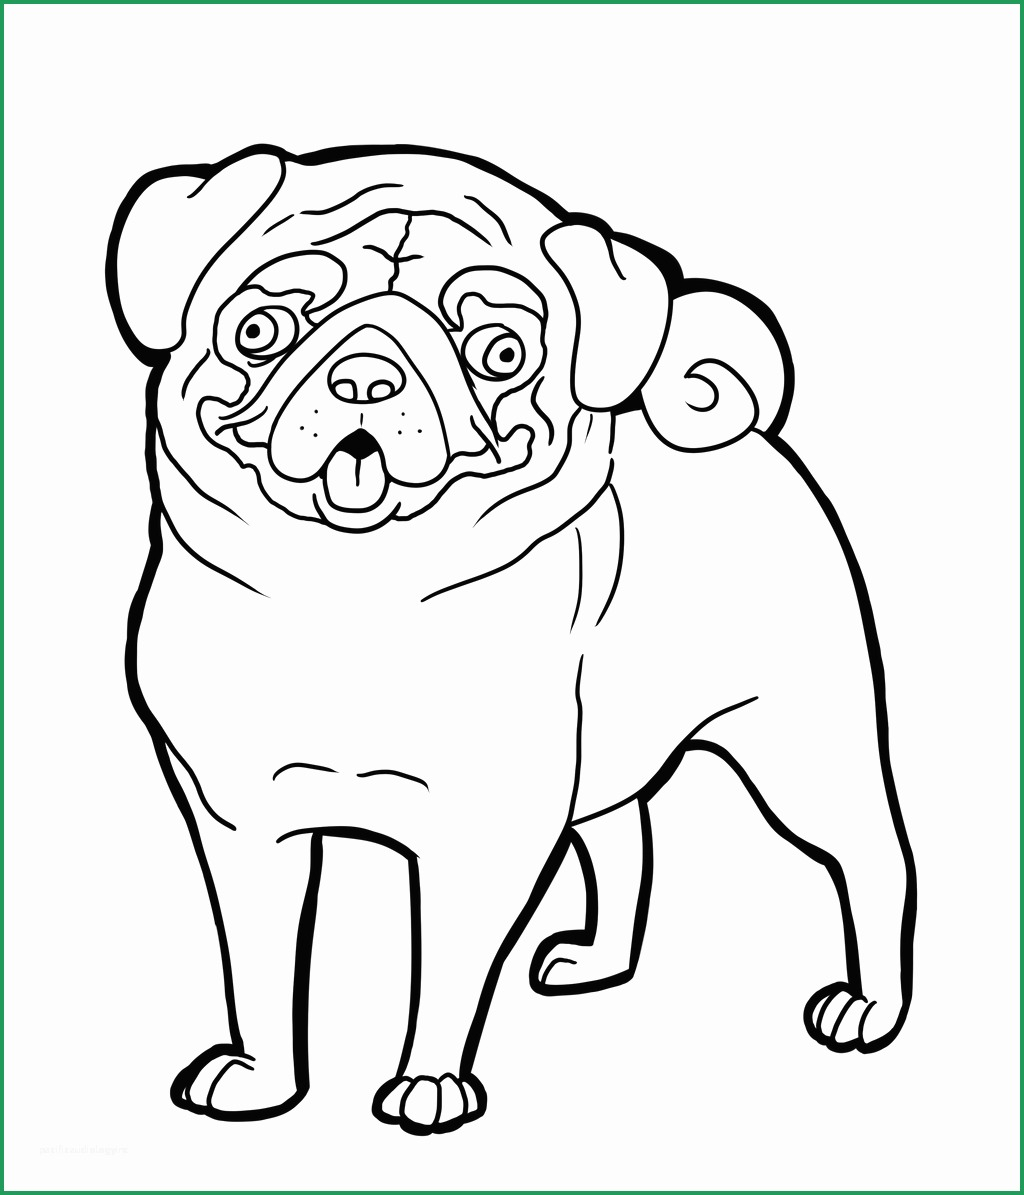 Pug Coloring Pages Free Grayscale Coloring Pages To Print Luxury Pug Coloring Pages Birijus Com